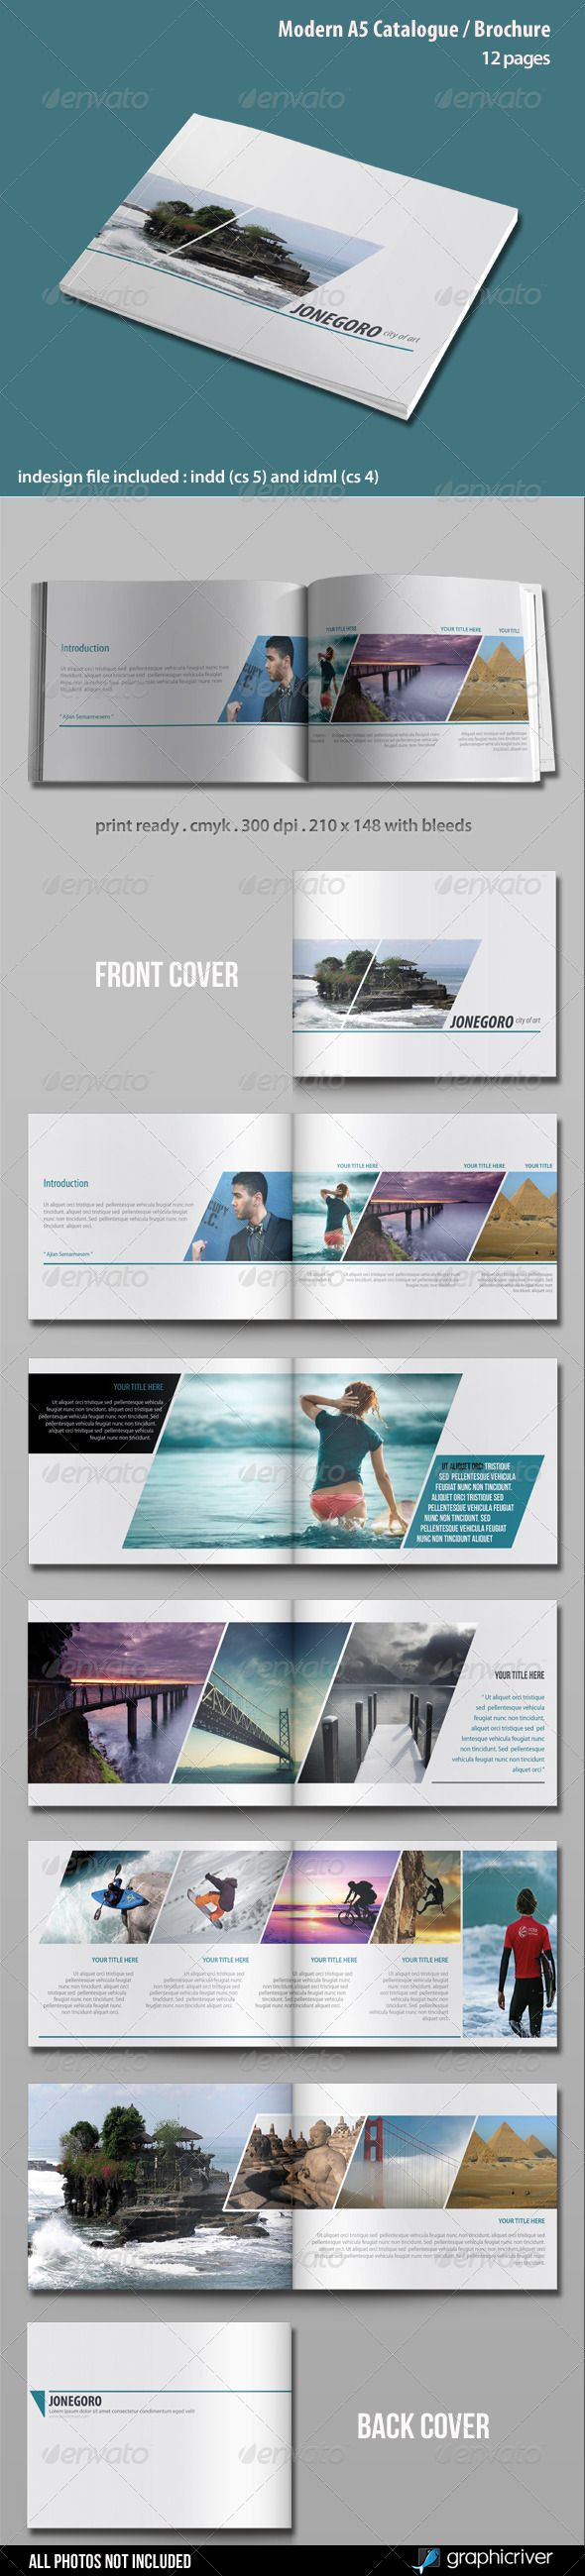 Modern A5 Catalogue / Brochure - GraphicRiver Item for Sale